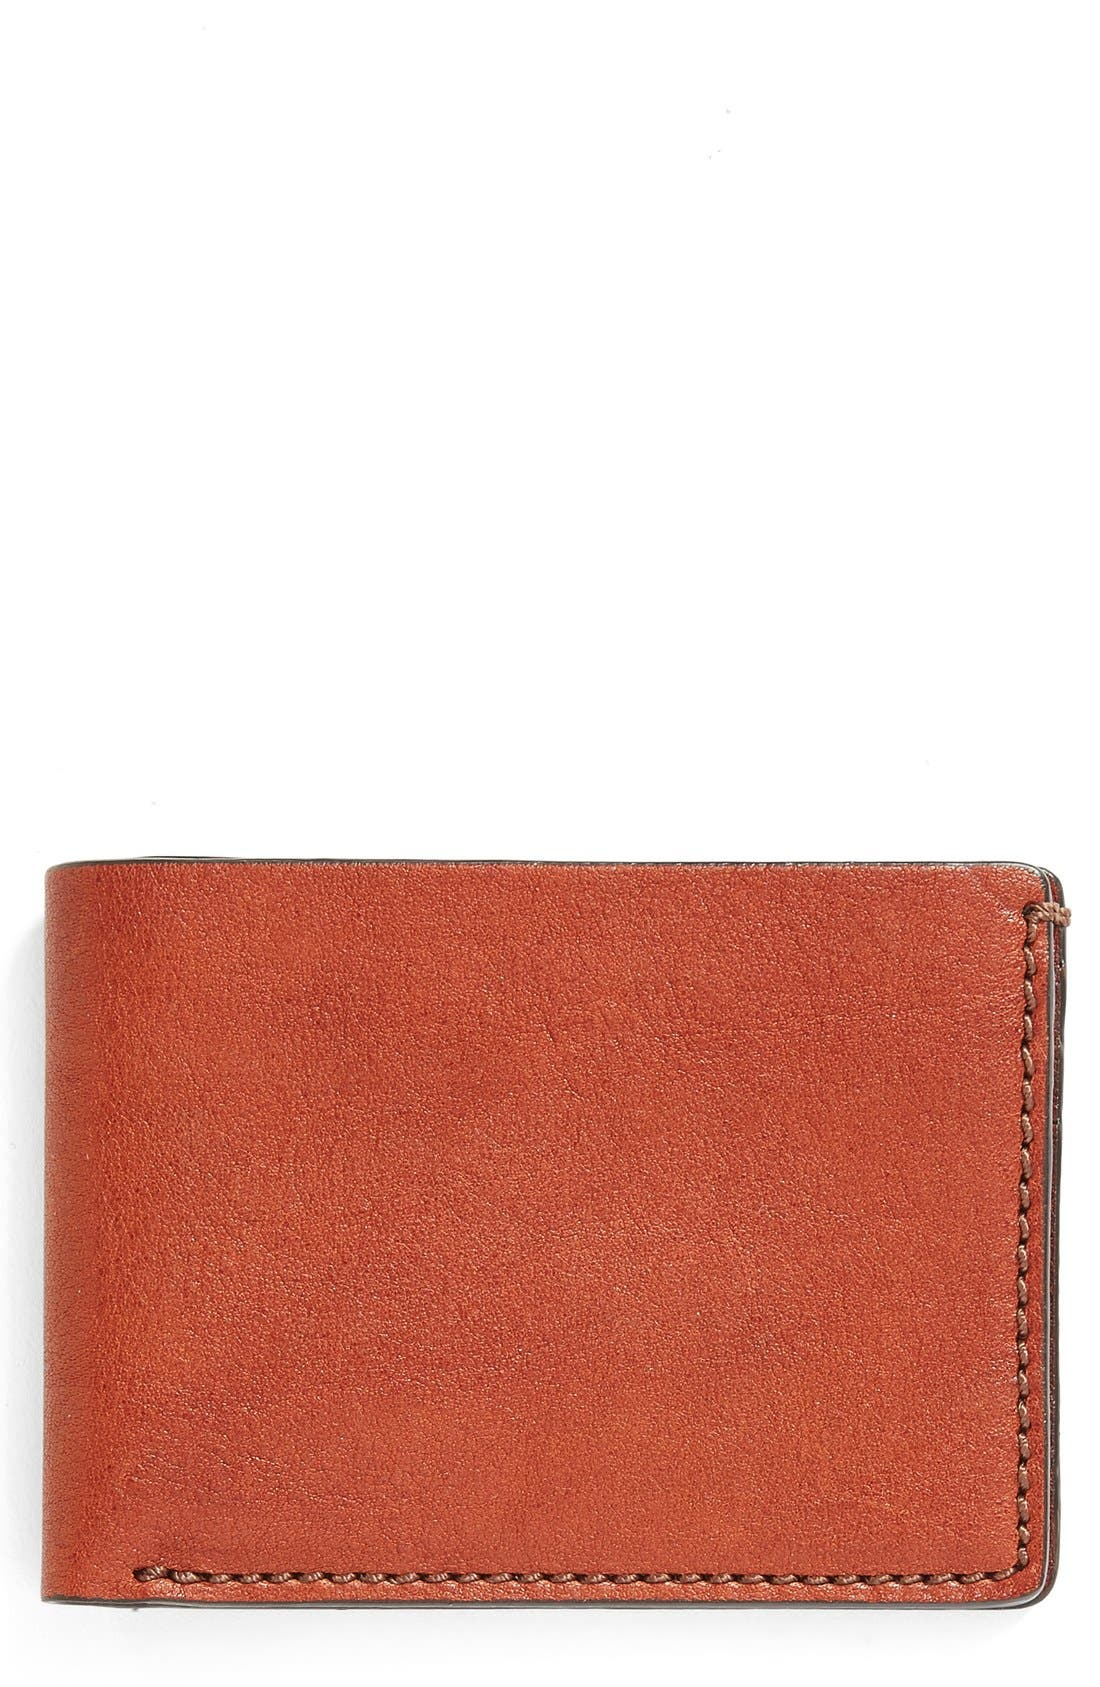 Leather Bifold Wallet,                             Main thumbnail 1, color,                             Cognac